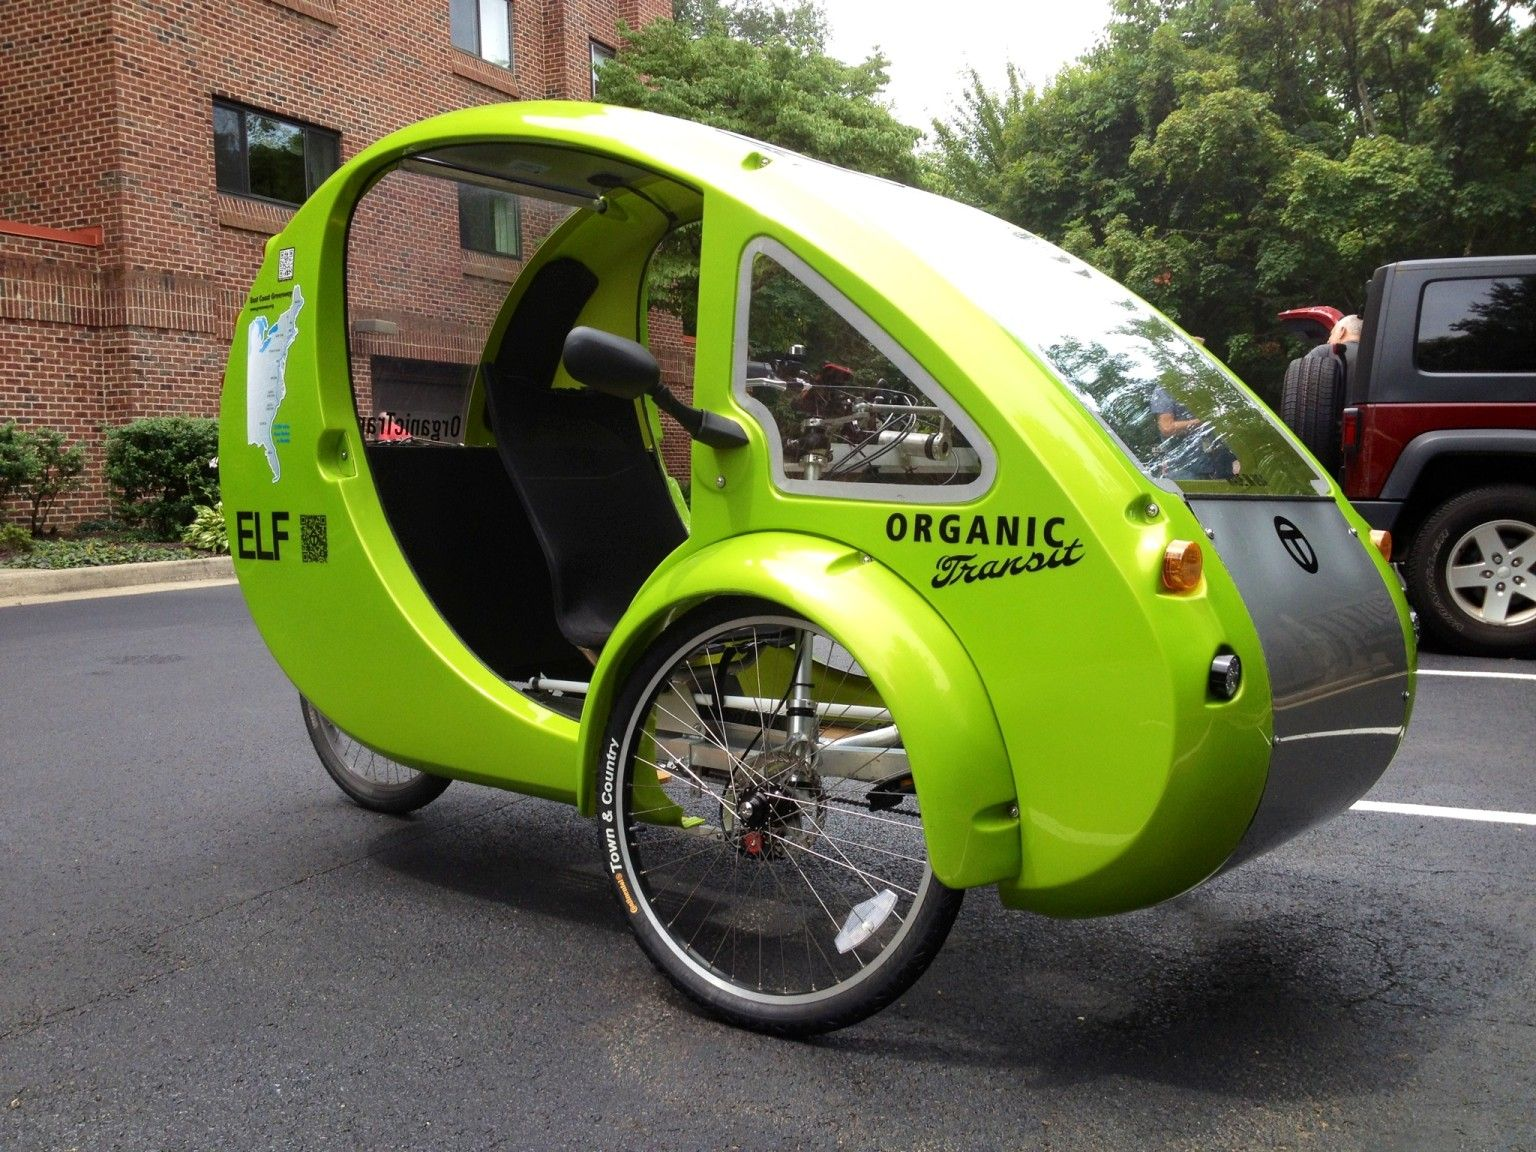 This Solar Powered Electric Bike Is The Solution For Urban Transportation Greener Ideal Battery Powered Car Urban Bicycle Electric Bike